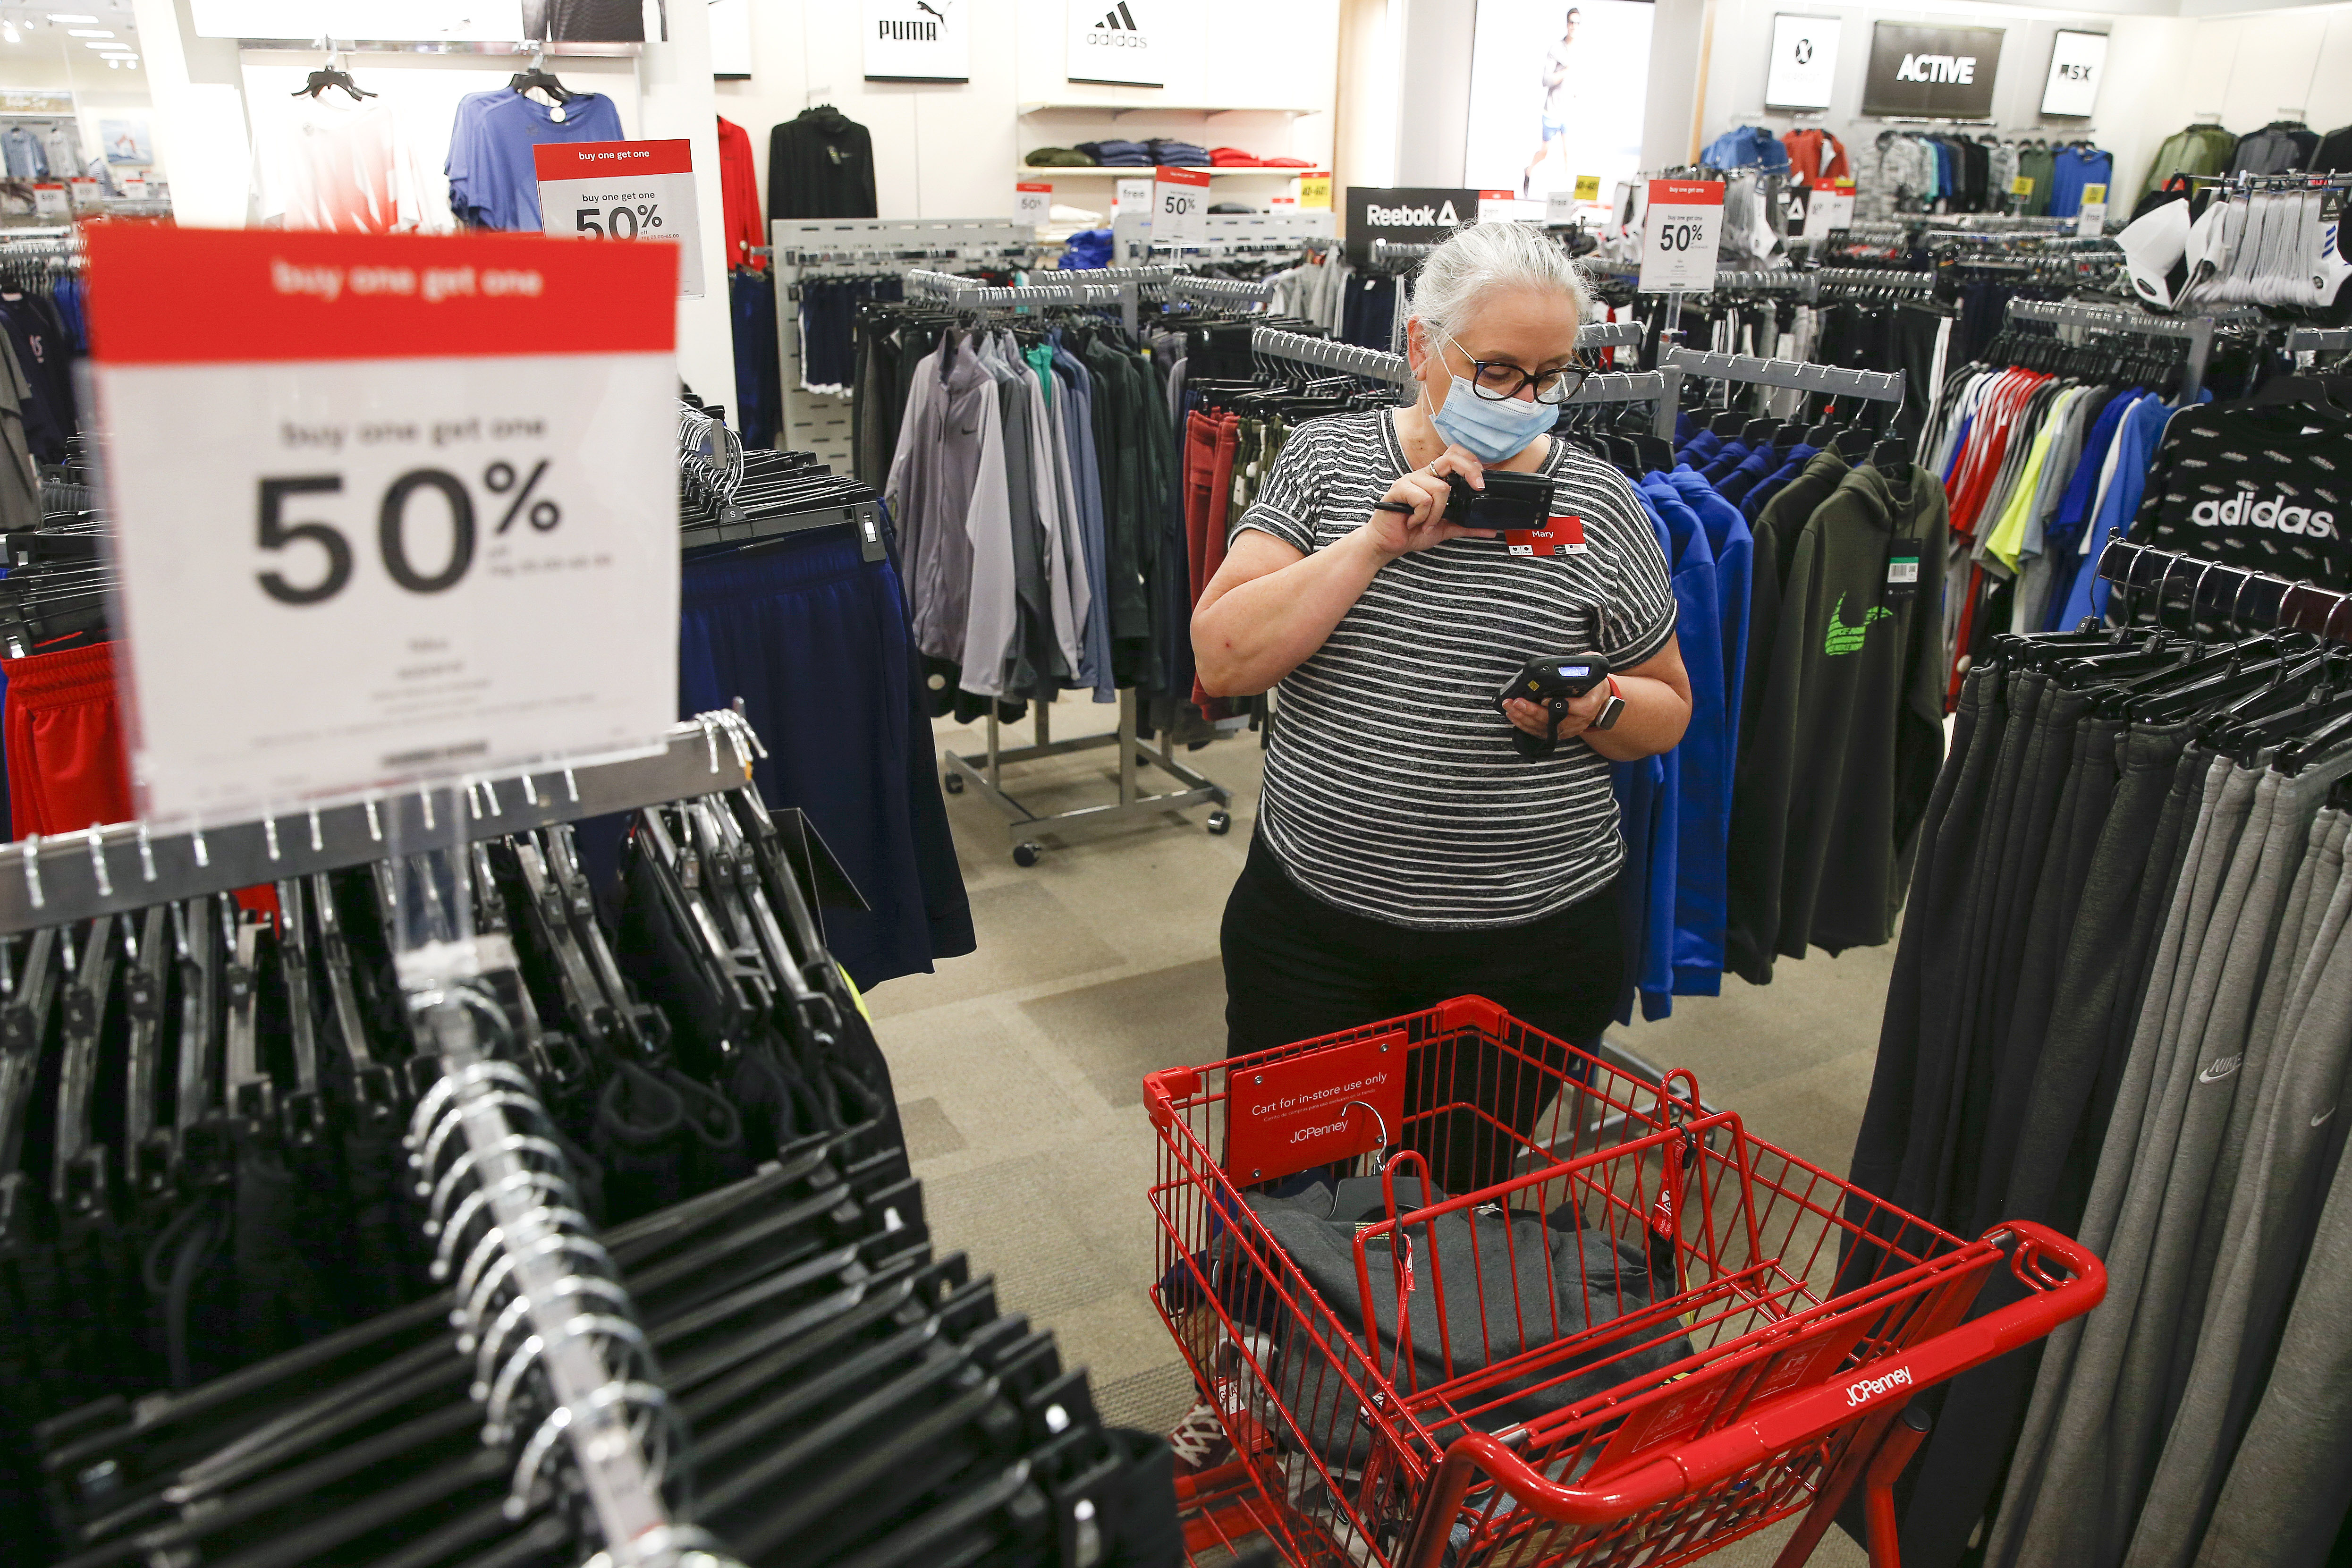 J C Penney Files For Bankruptcy A Crushing One As It Was Making Progress To Fix Itself